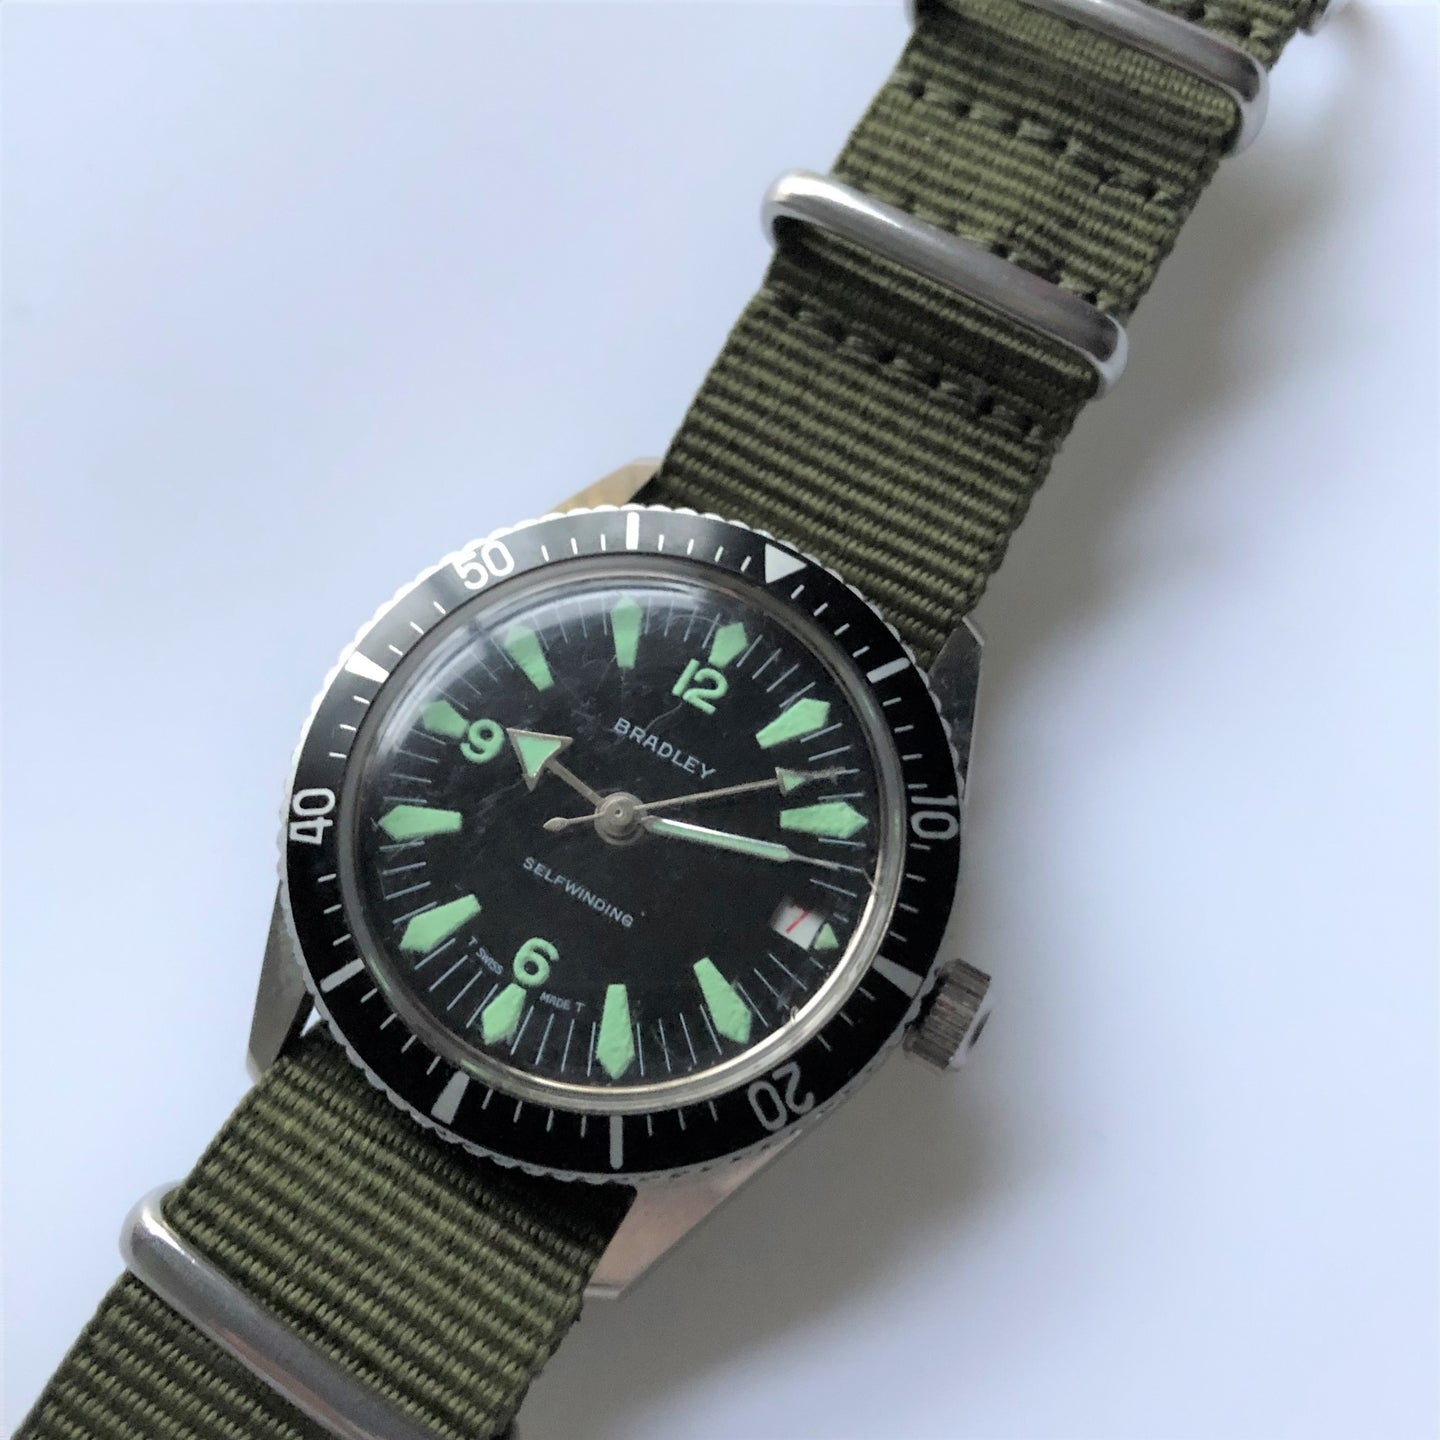 Vintage diving watch on nylon strap